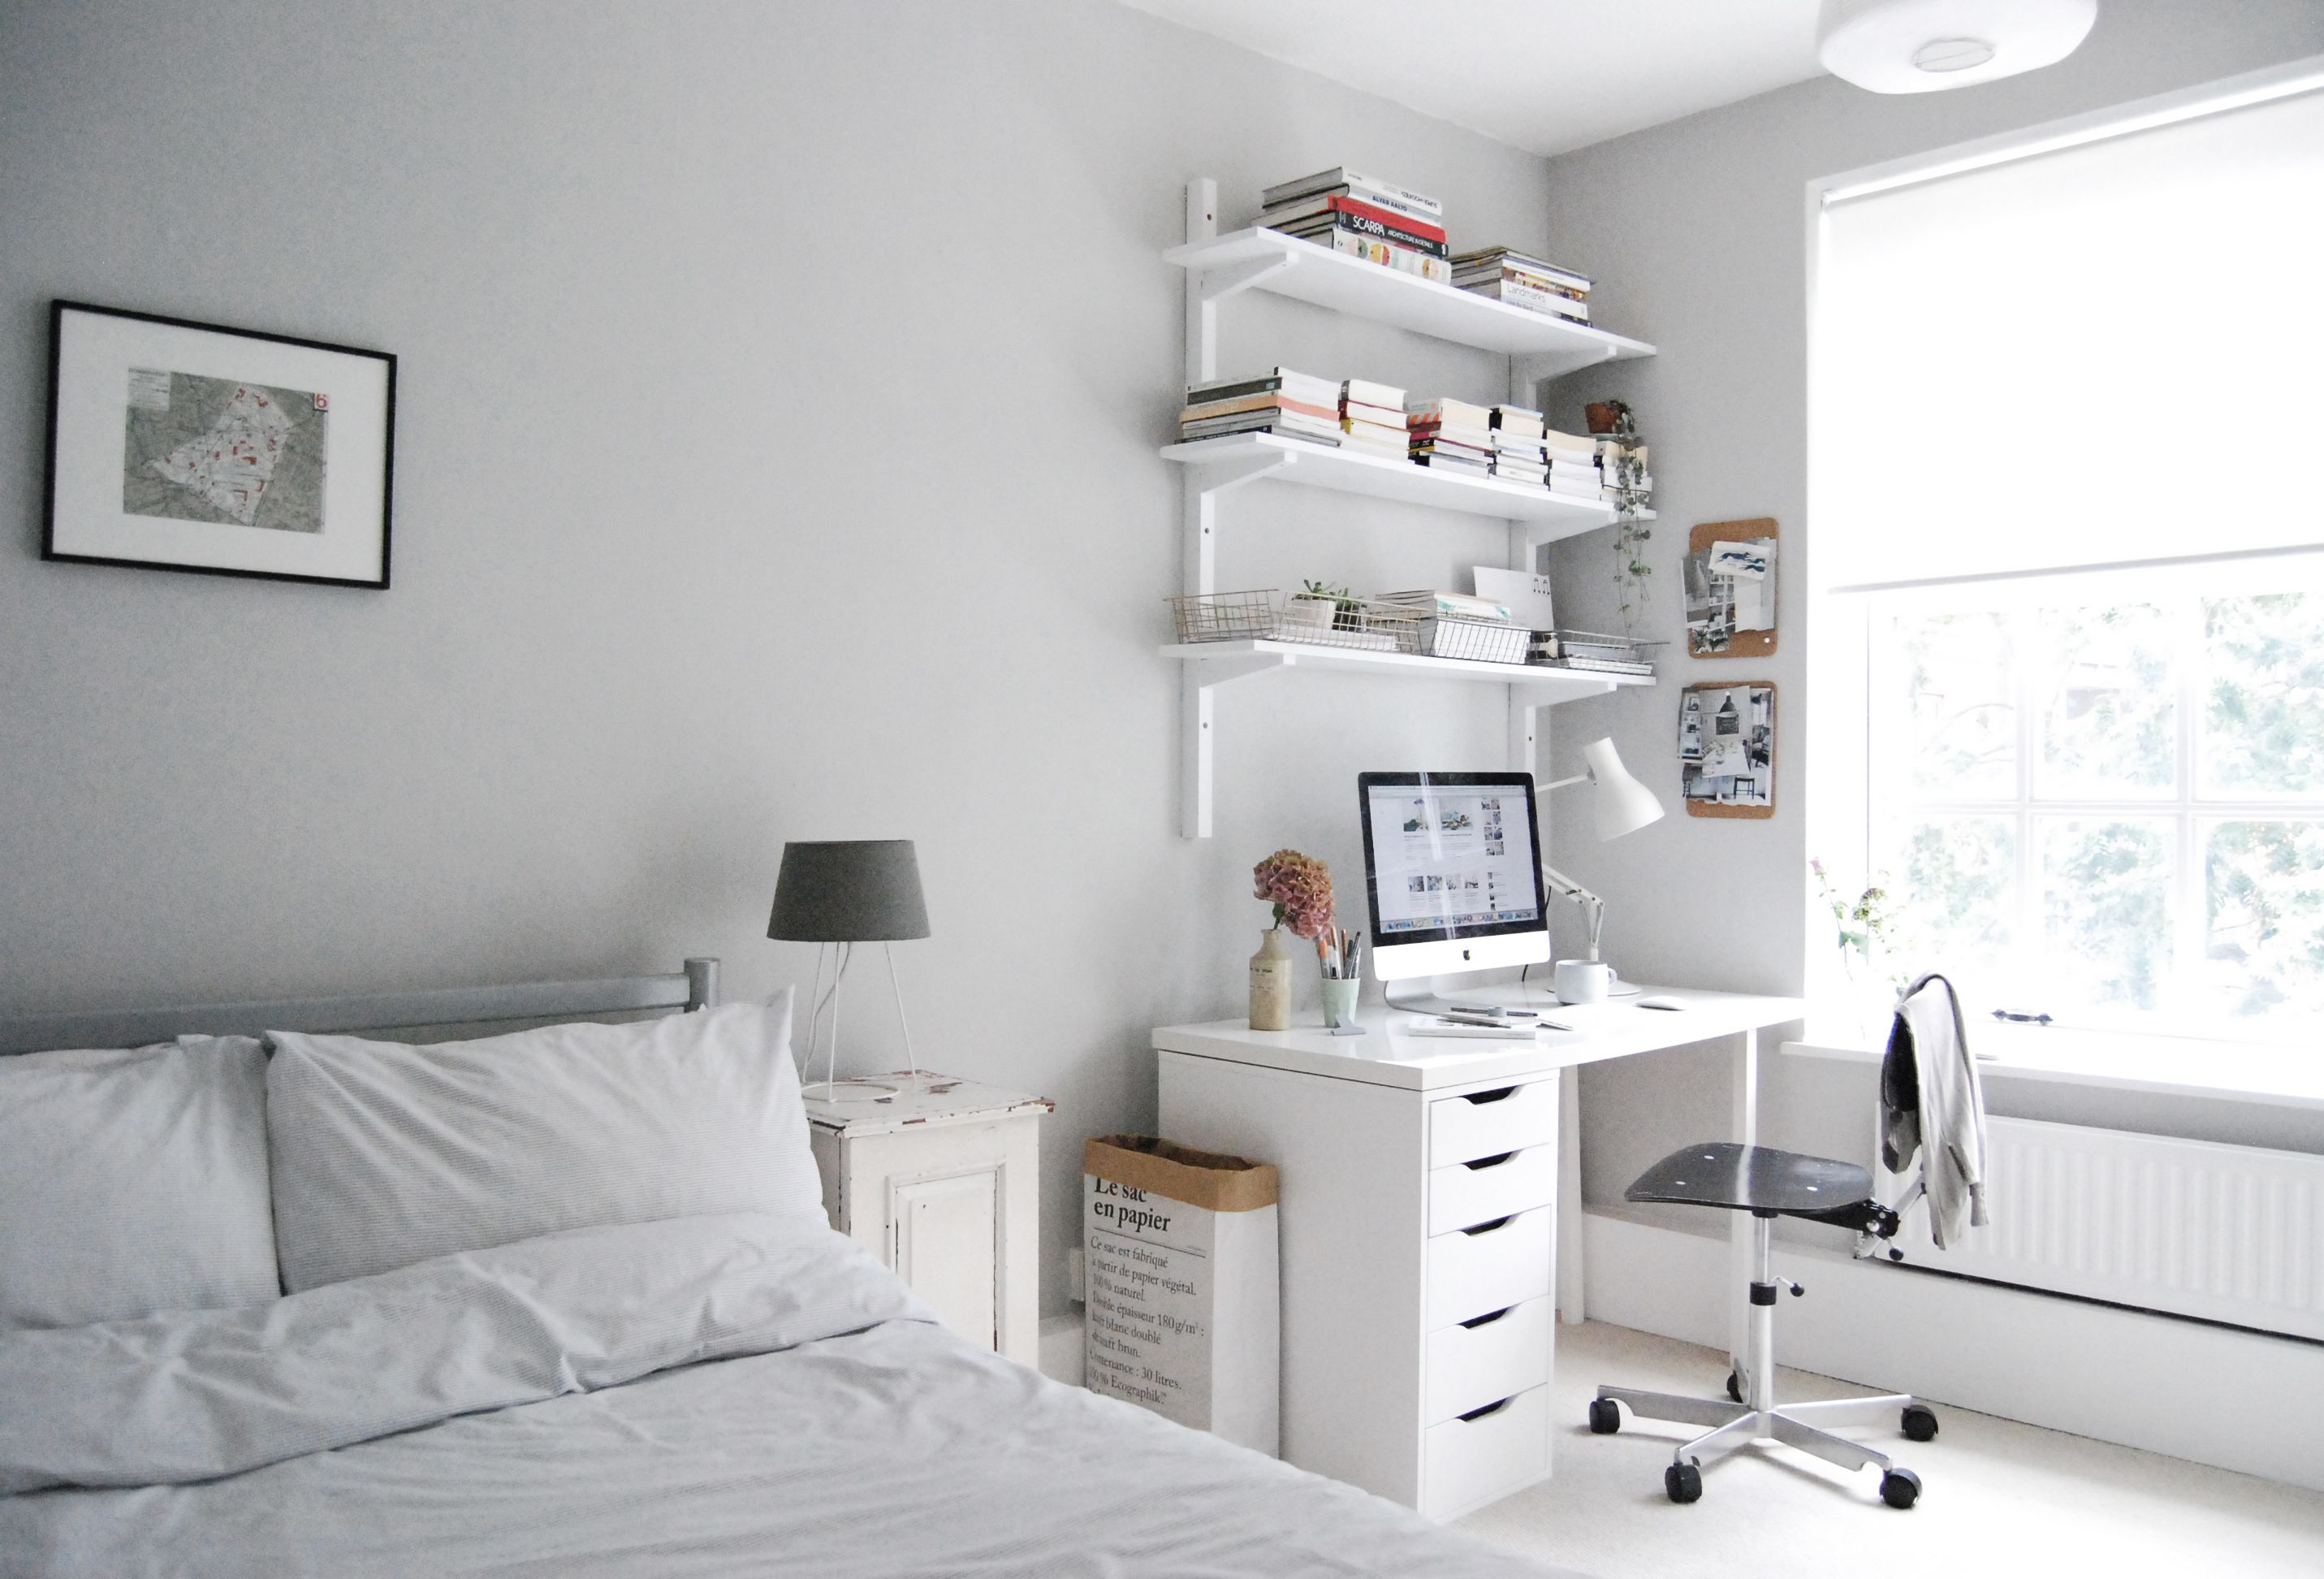 catesthill-guest-room-makeover-45 | Working space | Pinterest ...